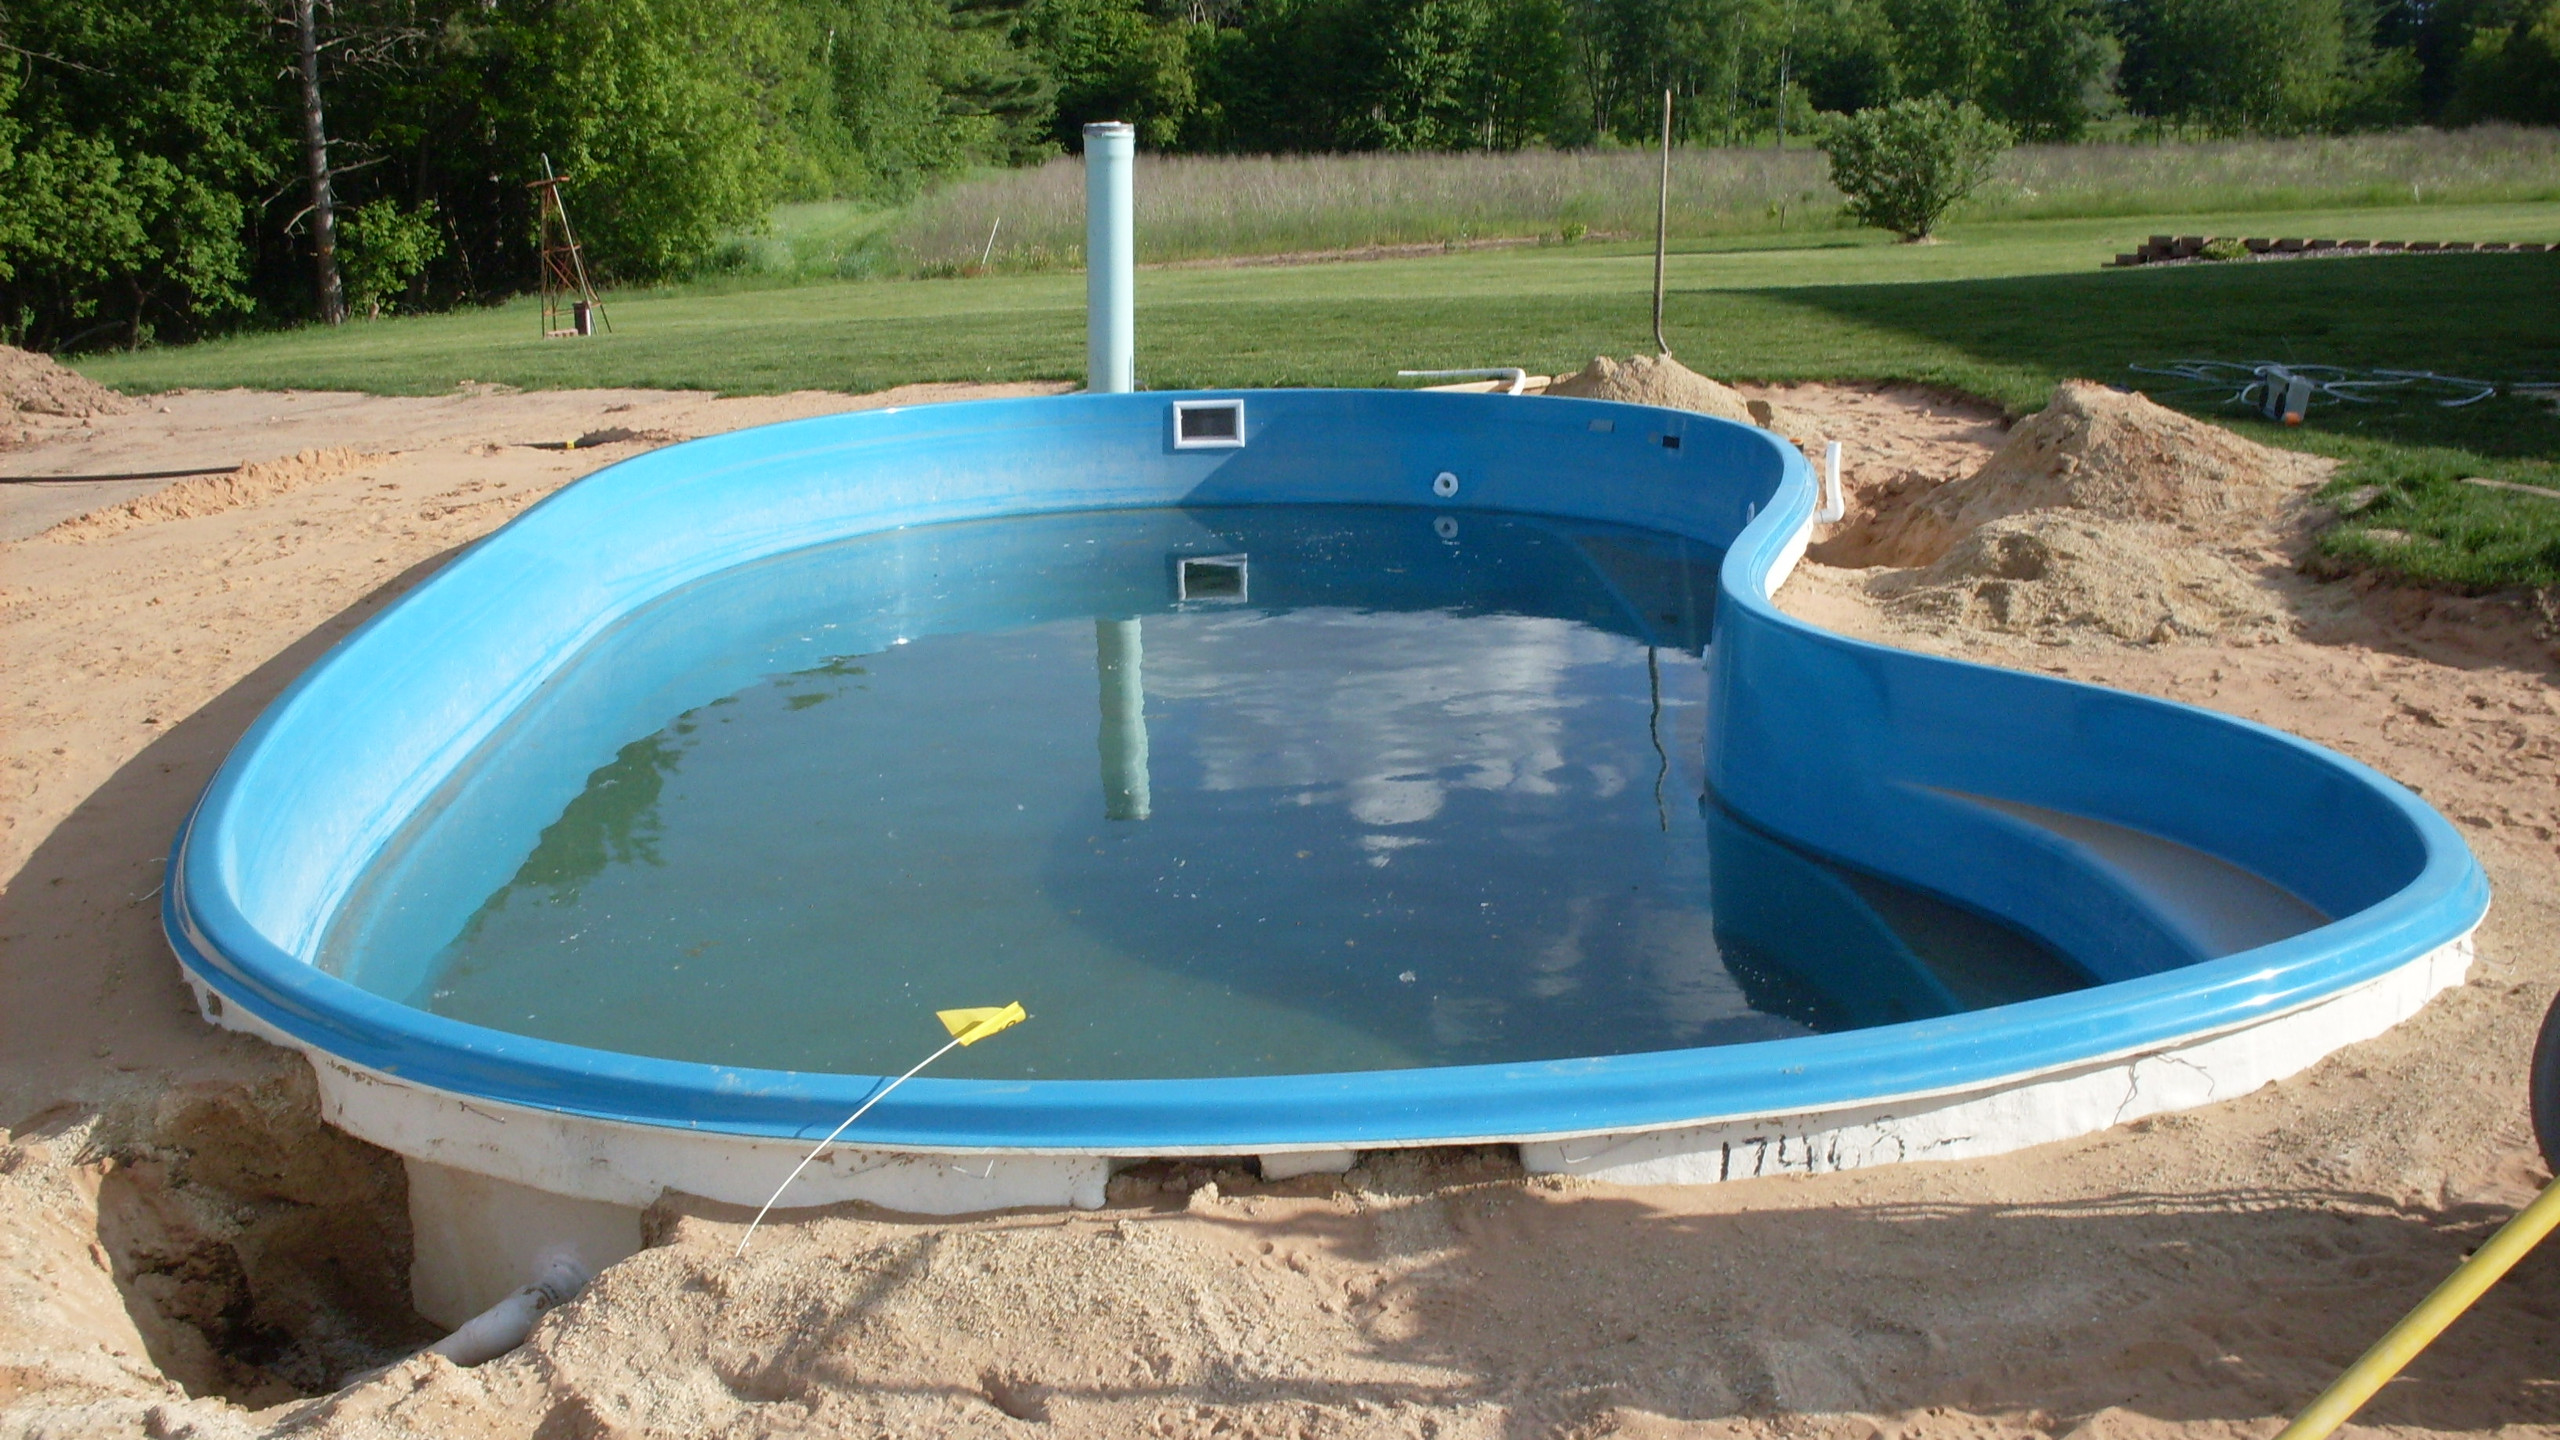 This is another fiberglass pool built by Siesta Creations. This pool was built in Shawano WI. Siesta Pools never pressure tested the plumbign and lef the homeowner with leaking fitting throuought the entire pool. All the fittings had to be removed, the pool wall sanded and new fittings installed and pressure tested.